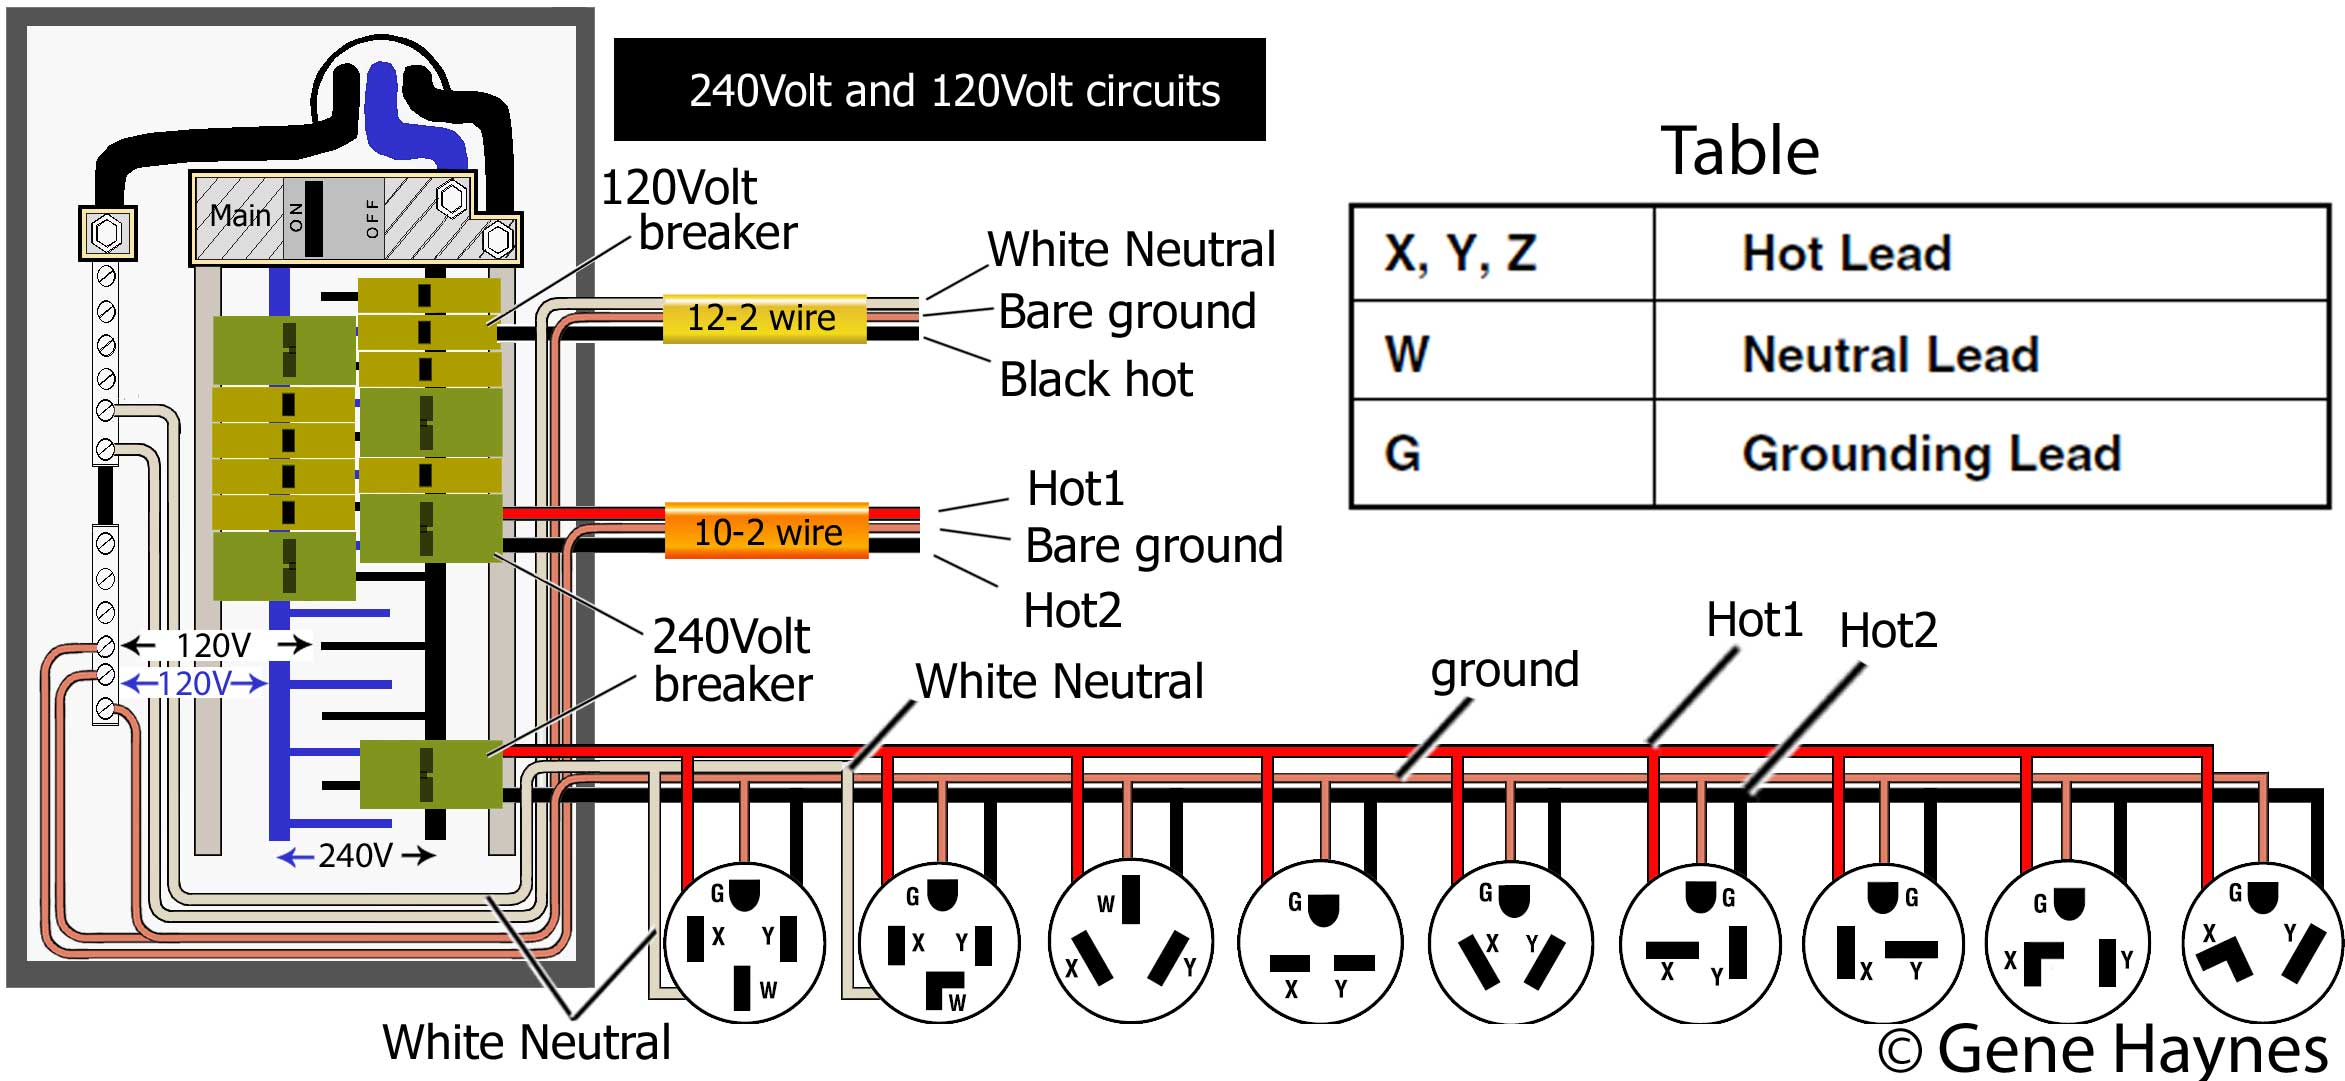 how to wire 240 volt outlets and plugs 3 Phase 220v Wiring Colors larger image, single phase 220v 3 phase wiring colors